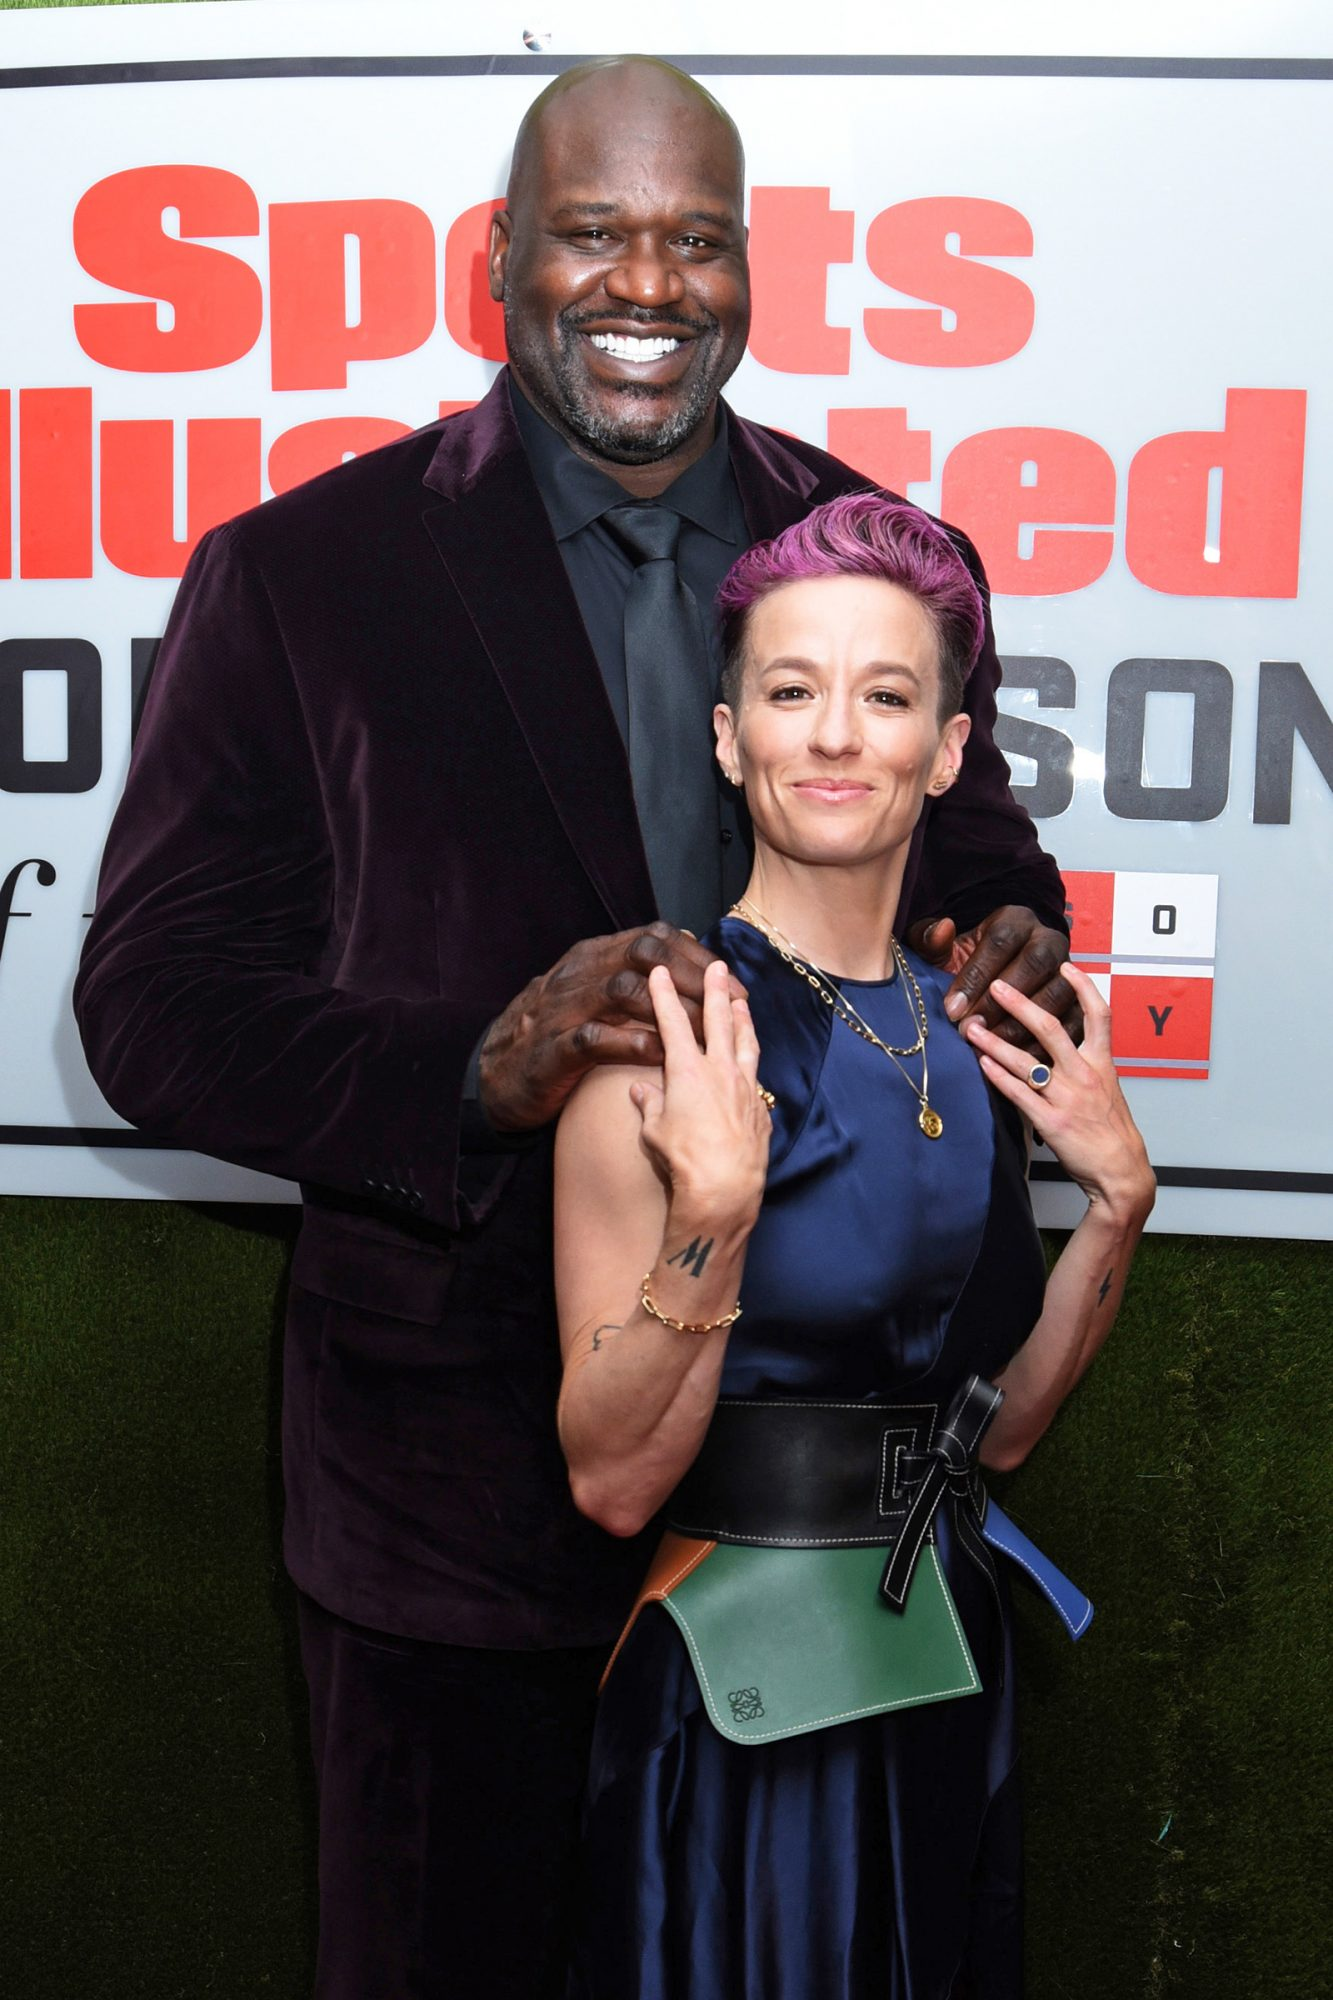 Shaquille O'Neal and Megan Rapinoe at the Sports Illustrated Annual Sportsperson of the Year Awards, held at the Ziegfeld Ballroom in New York